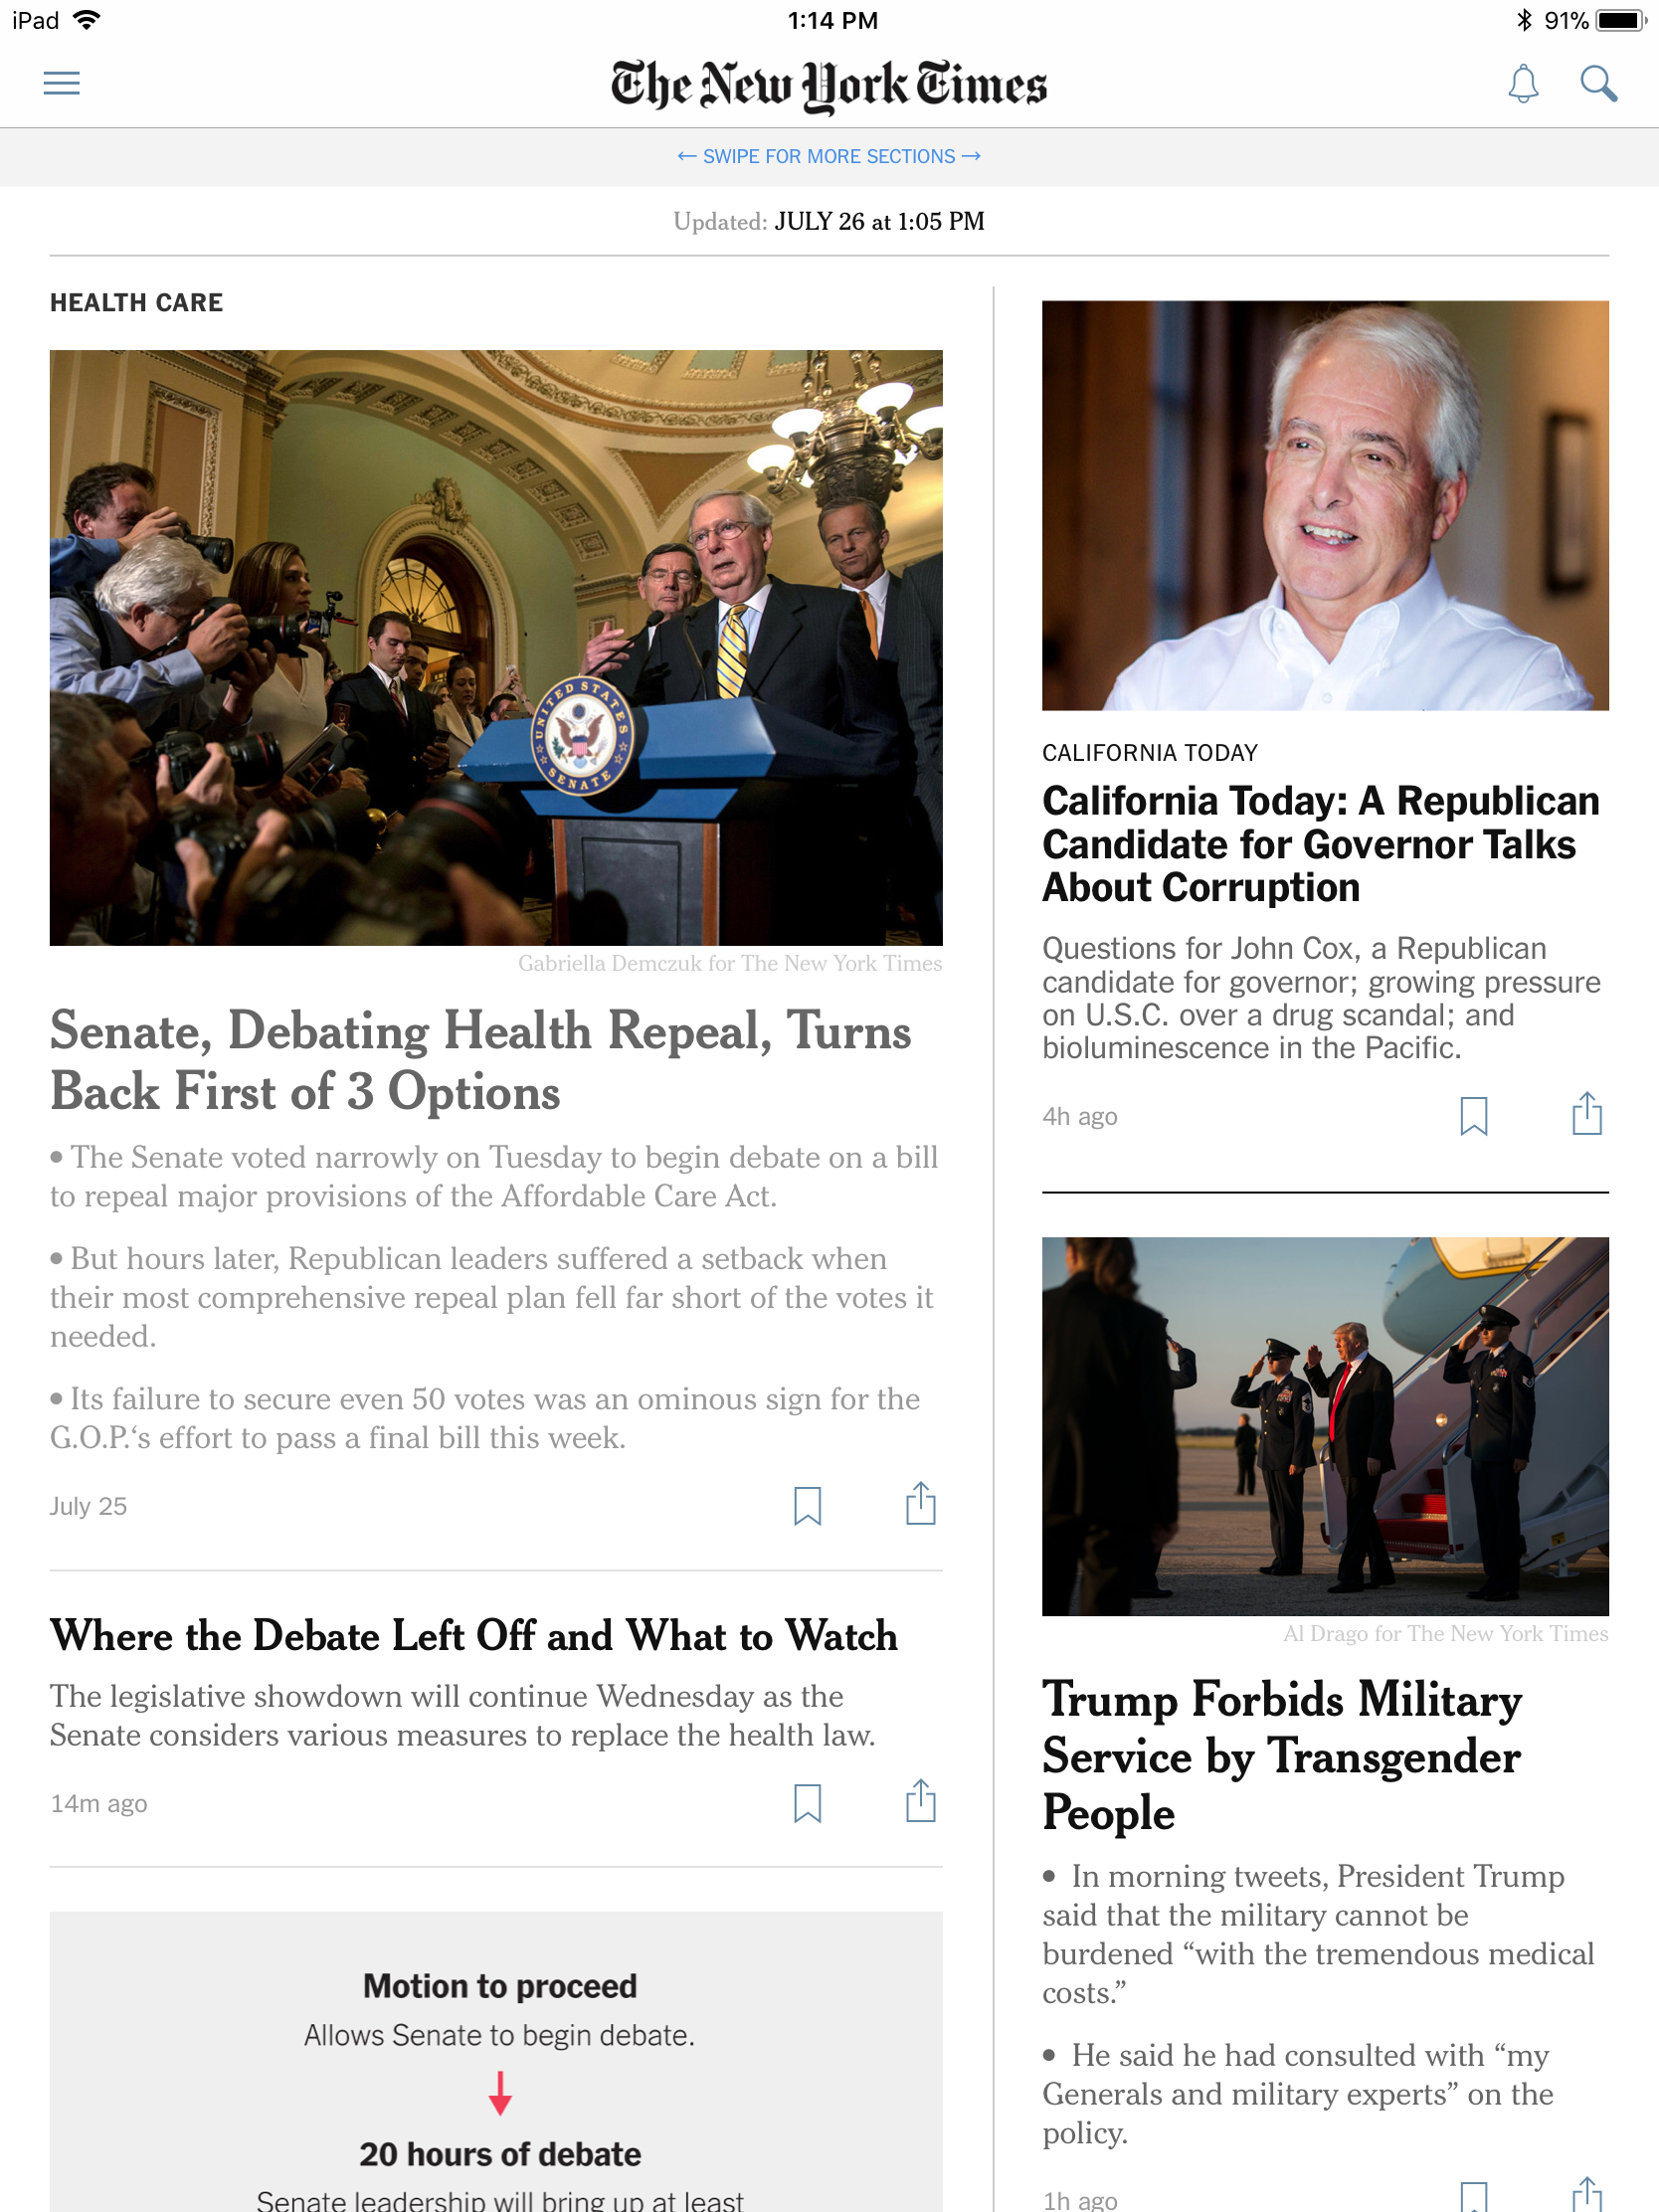 With its new iOS app, The New York Times is finally unifying its